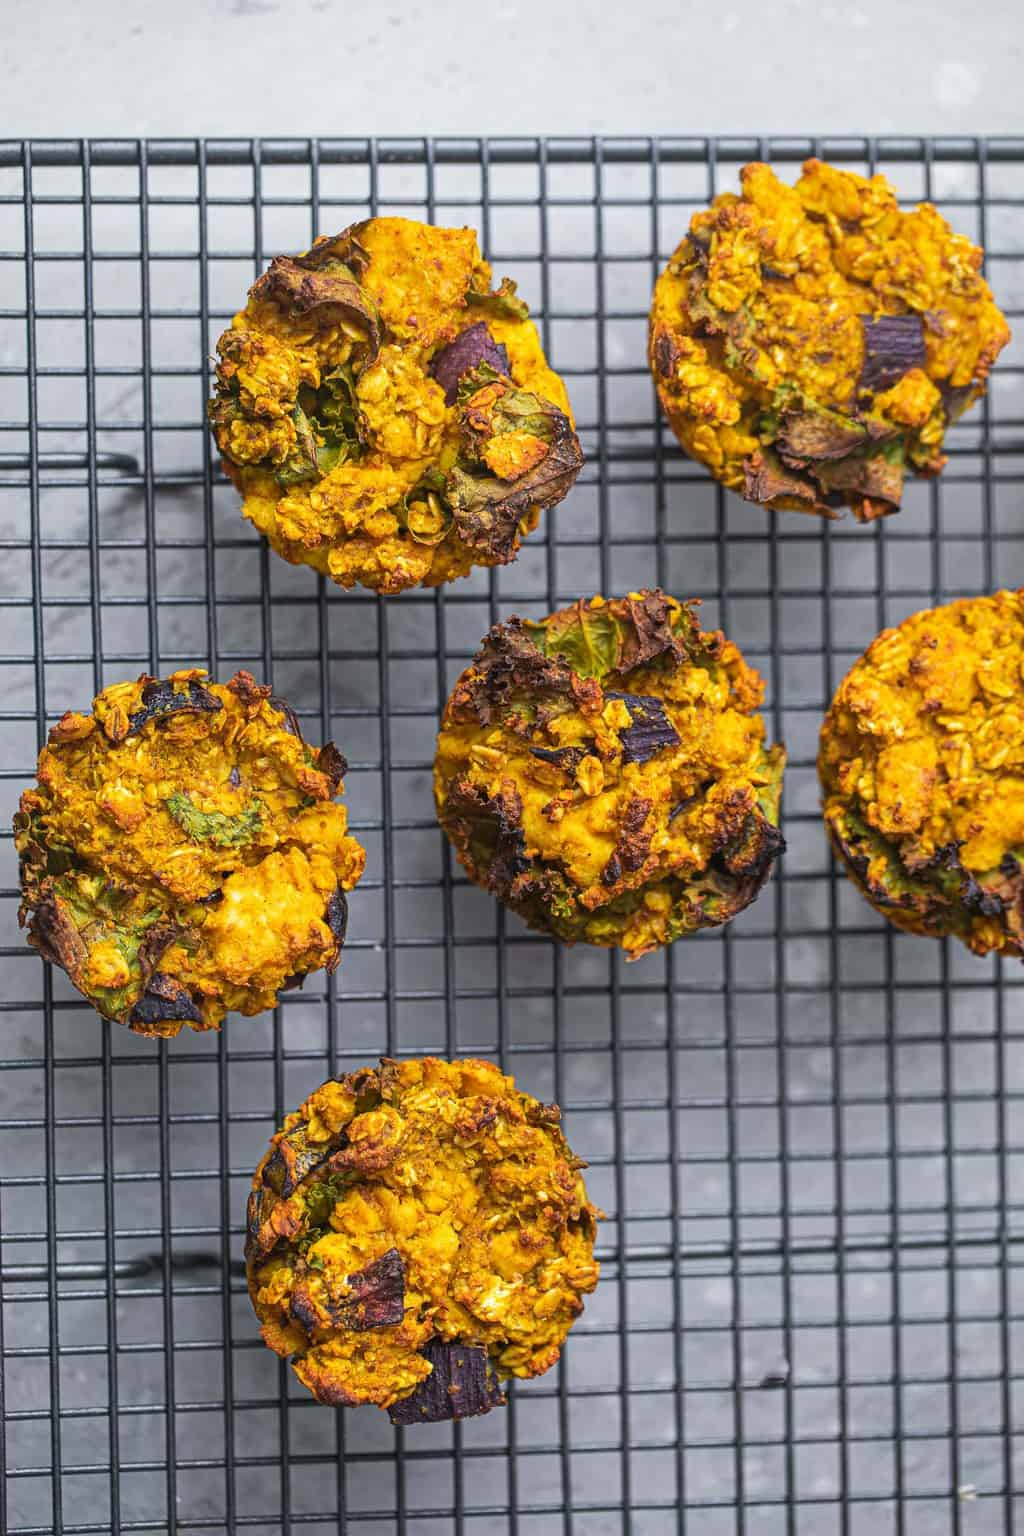 Vegan muffins made from tofu, oats and chickpea flour on a cooling rack